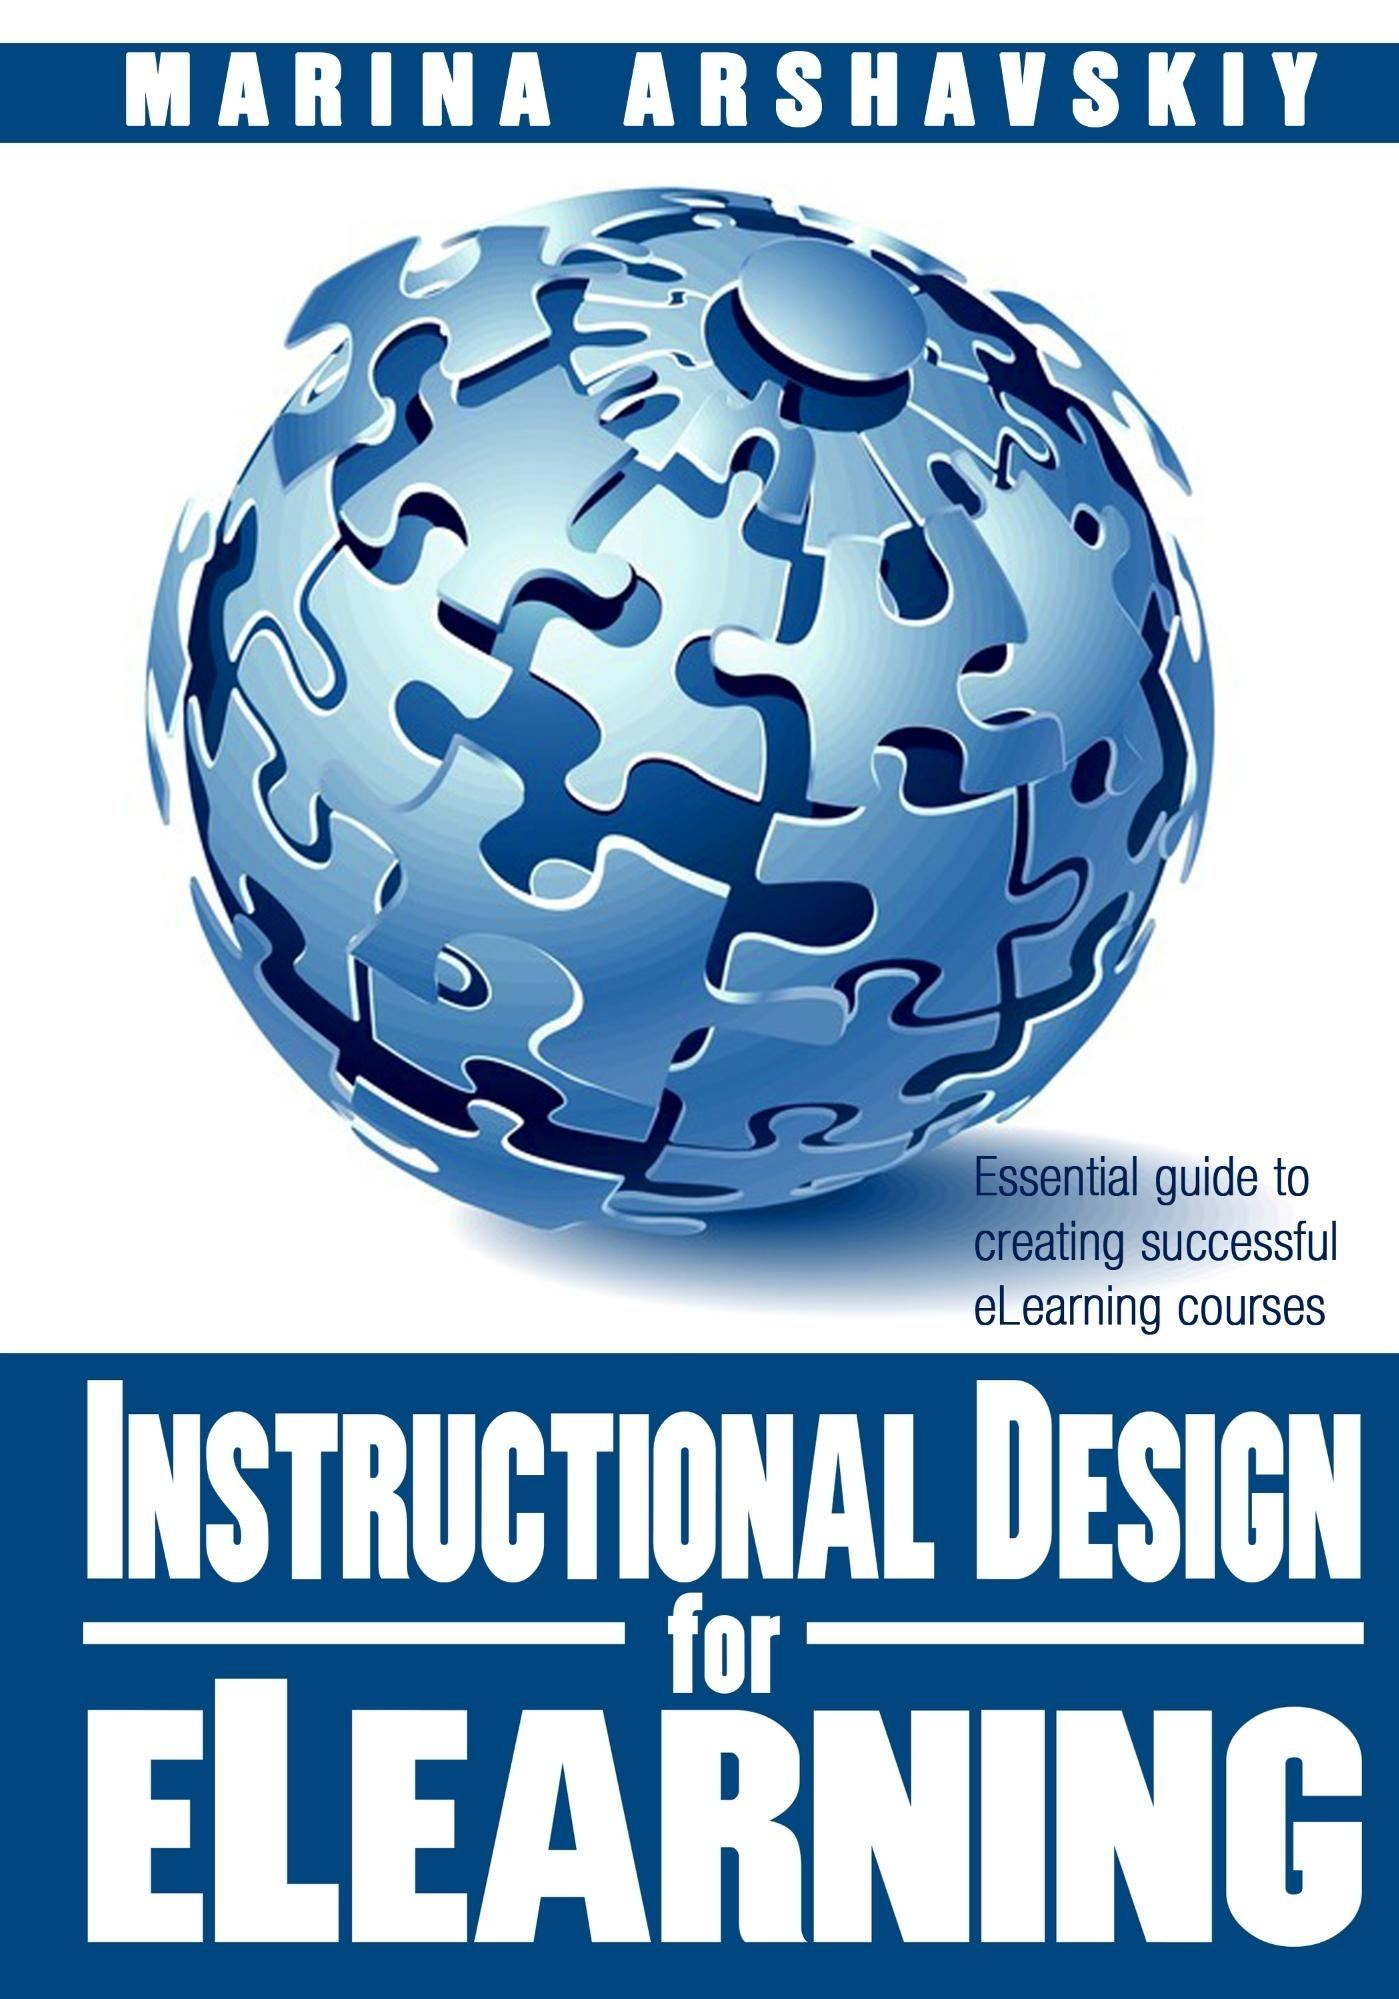 The Instructional Design for eLearning Book Review